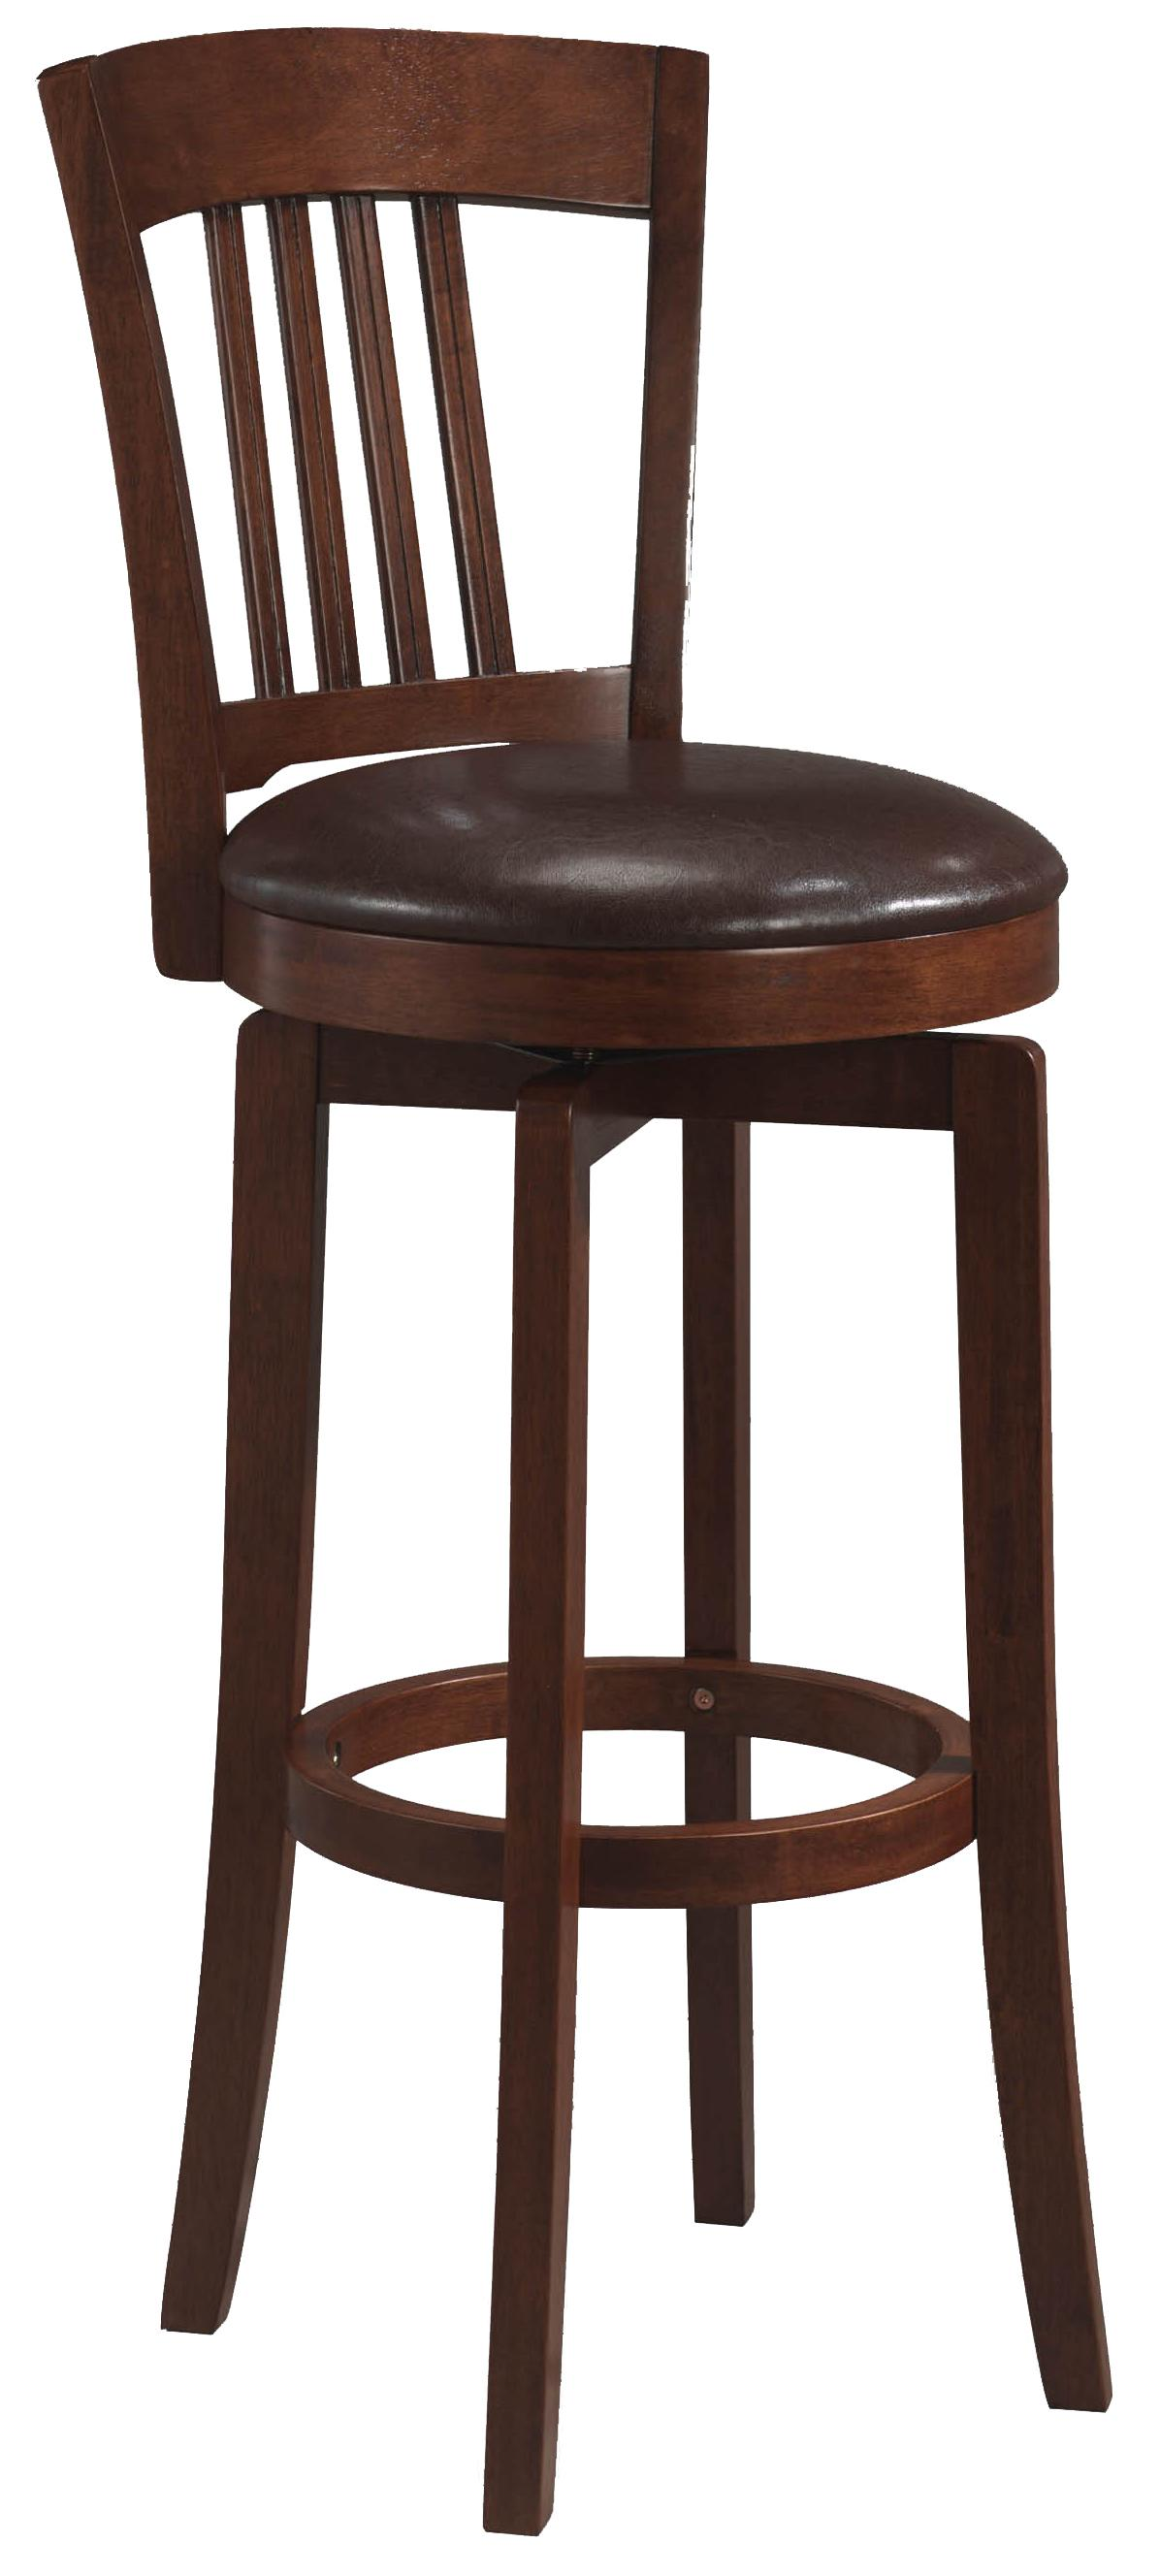 Hillsdale Wood Stools 30 Quot Bar Height Canton Swivel Stool